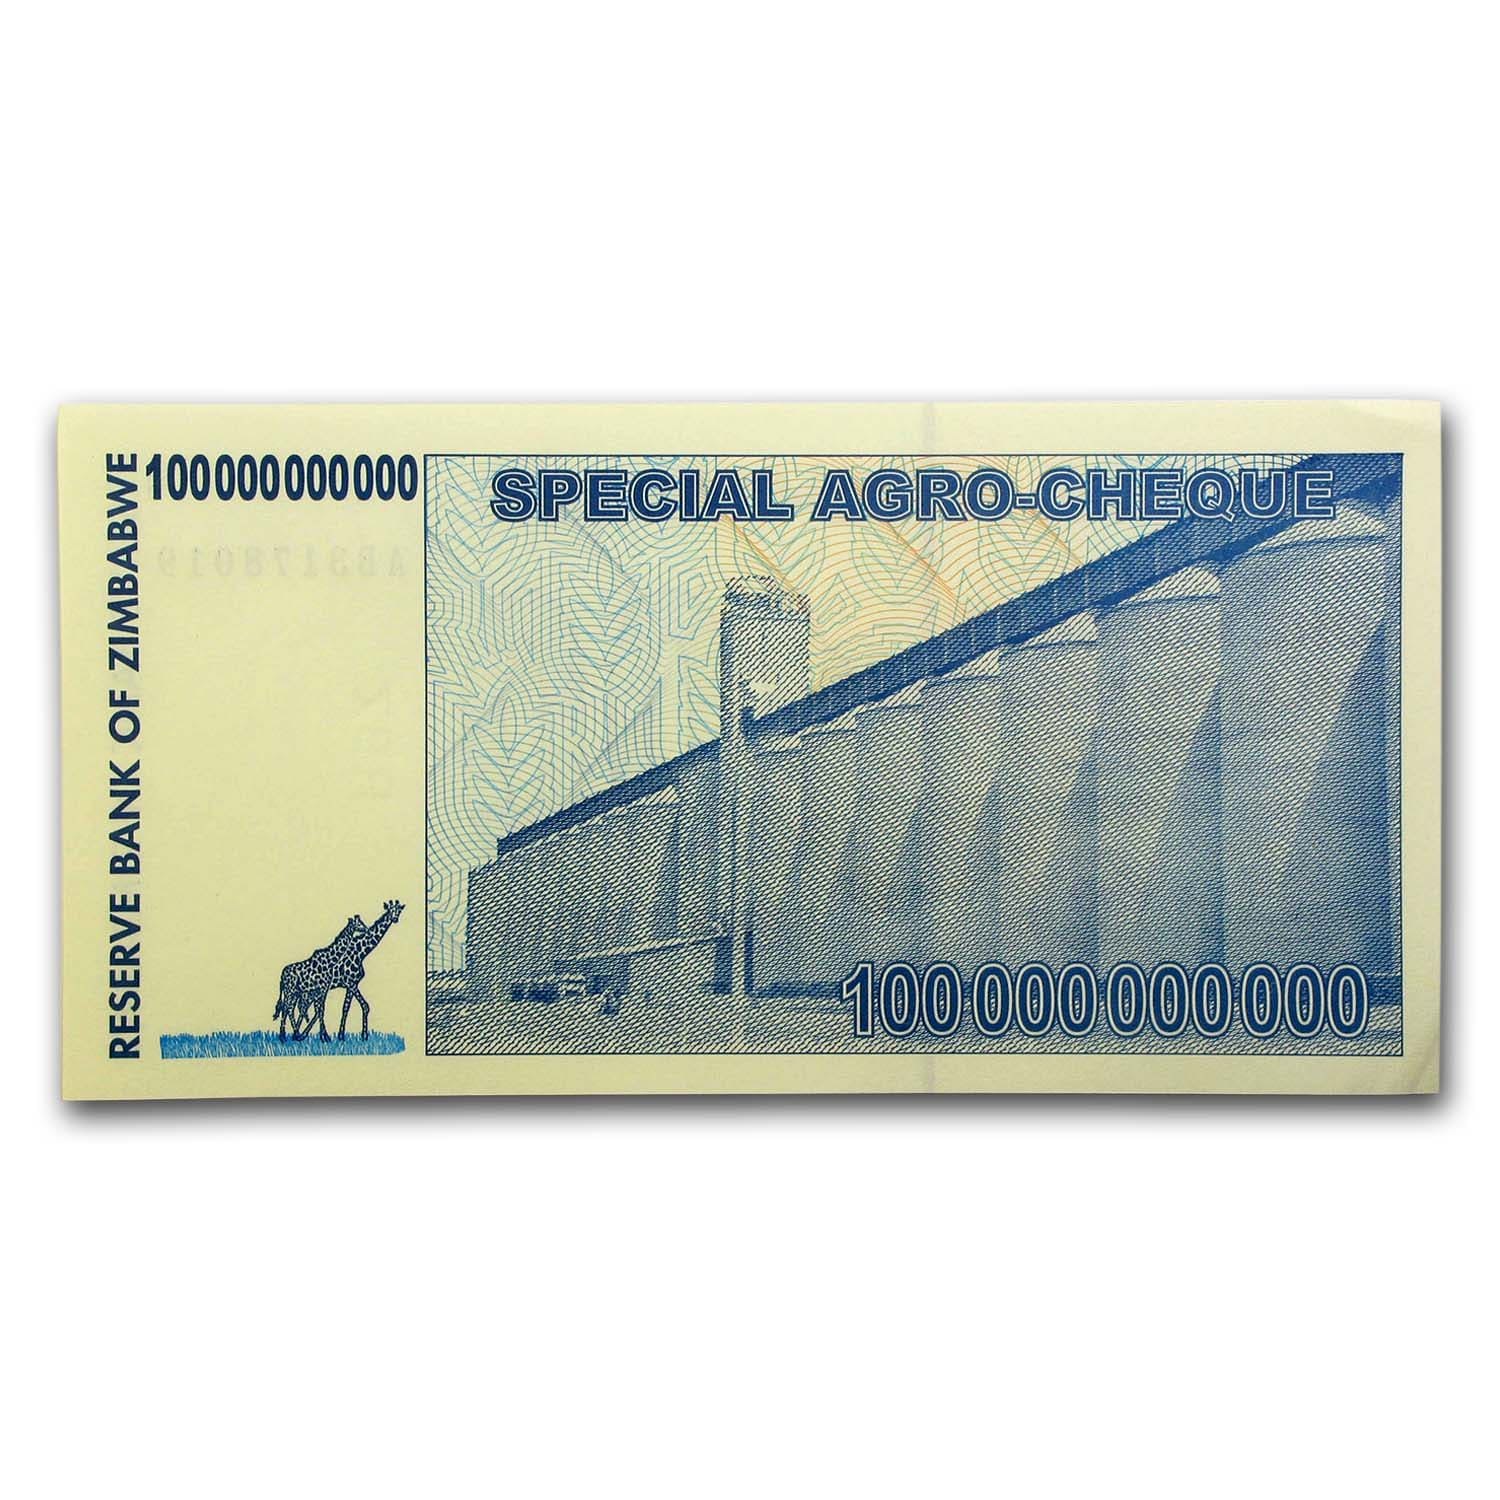 2008 Zimbabwe 100 Billion Dollars Giraffe Grain Elevators Unc